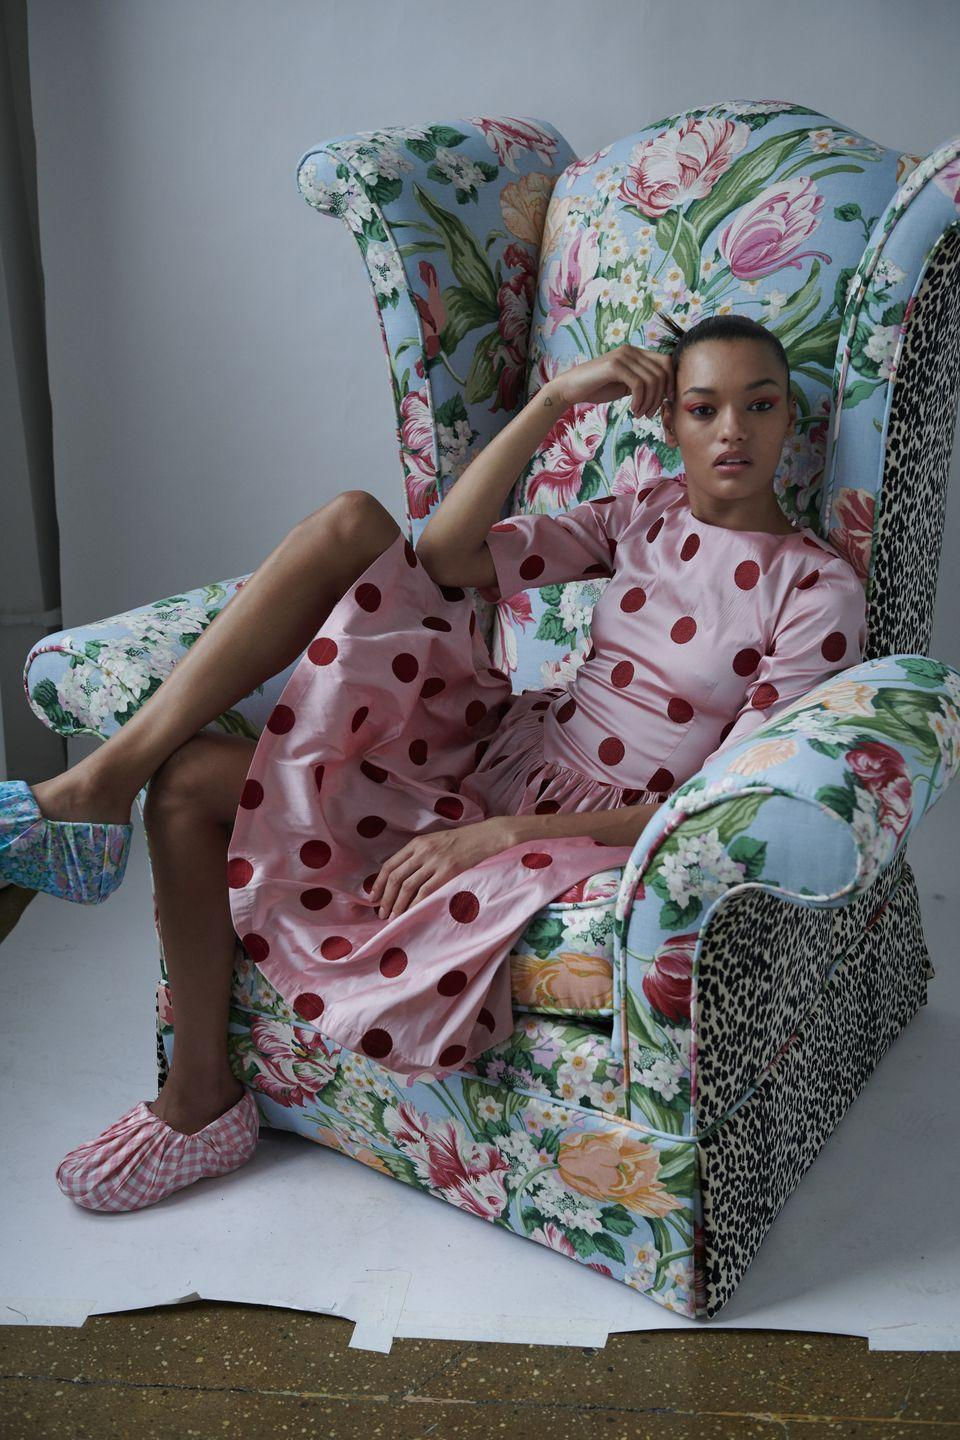 <p>Beautiful prints and prairie-inspired dresses defined Batsheva's latest collection, which was presented via a lookbook, and featured many of the label's signature silhouettes. The spotty satin frocks, puffy shoulders and gingham prints are trademark elements of the designer's collections and sat in the collection alongside button-up shirts and fun floral trousers.</p>